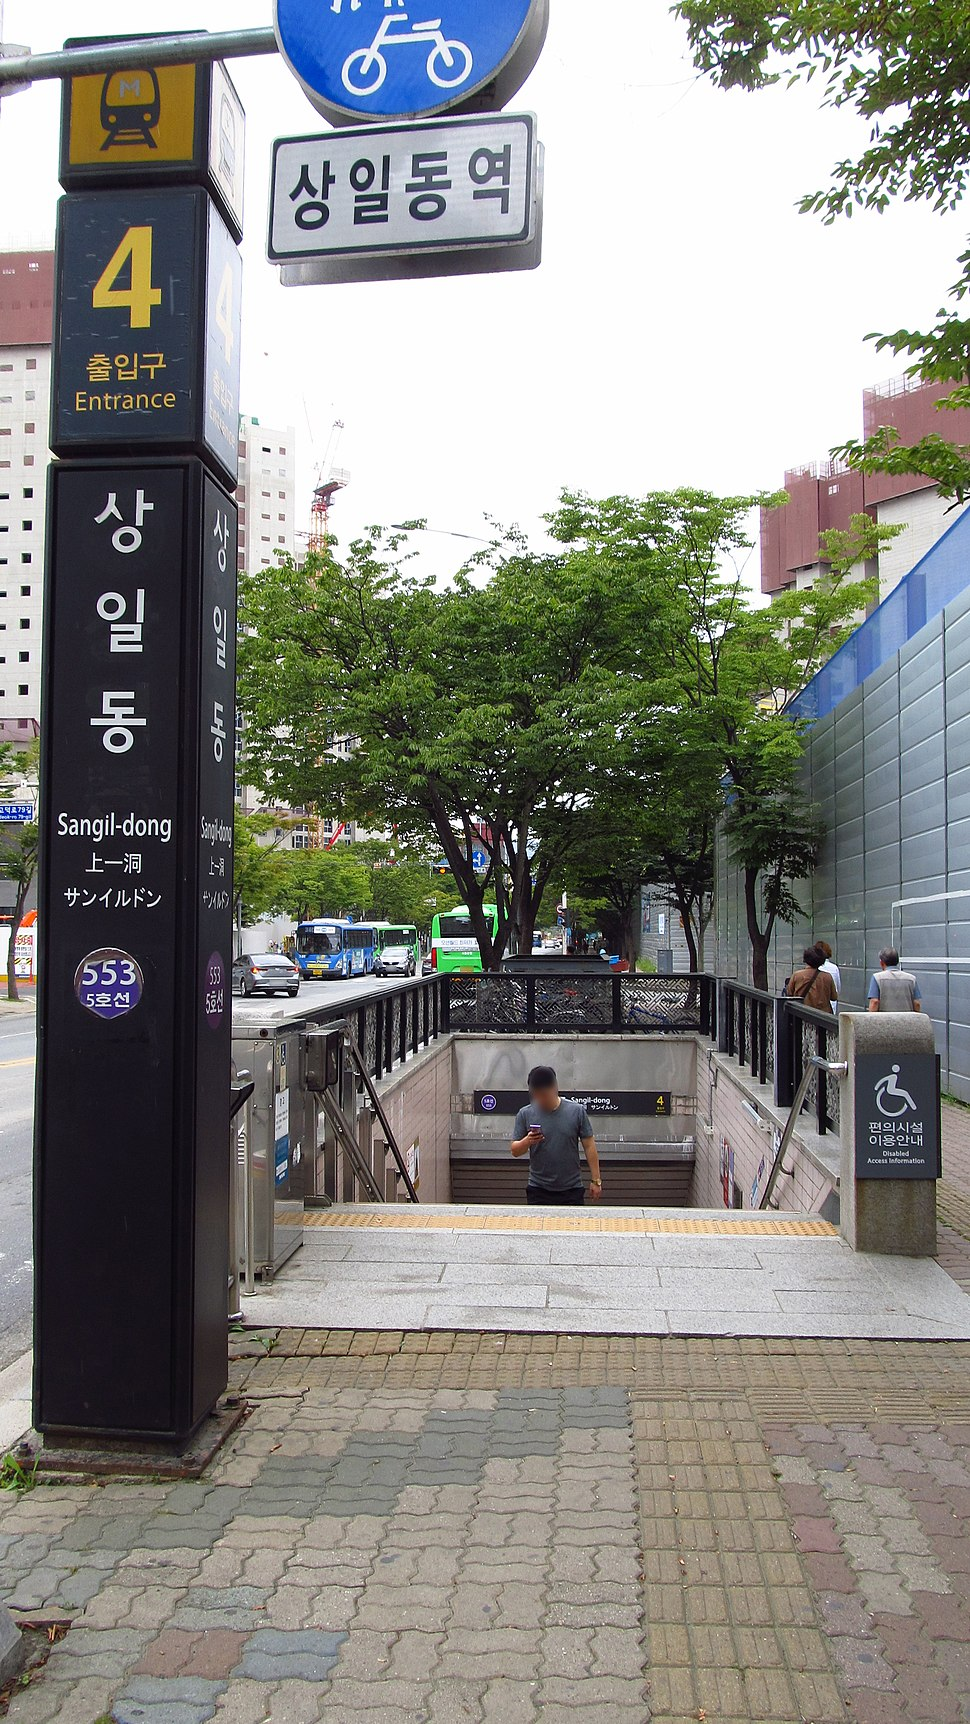 Seoul-metro-553-Sangil-dong-station-entrance-4-20180914-125136